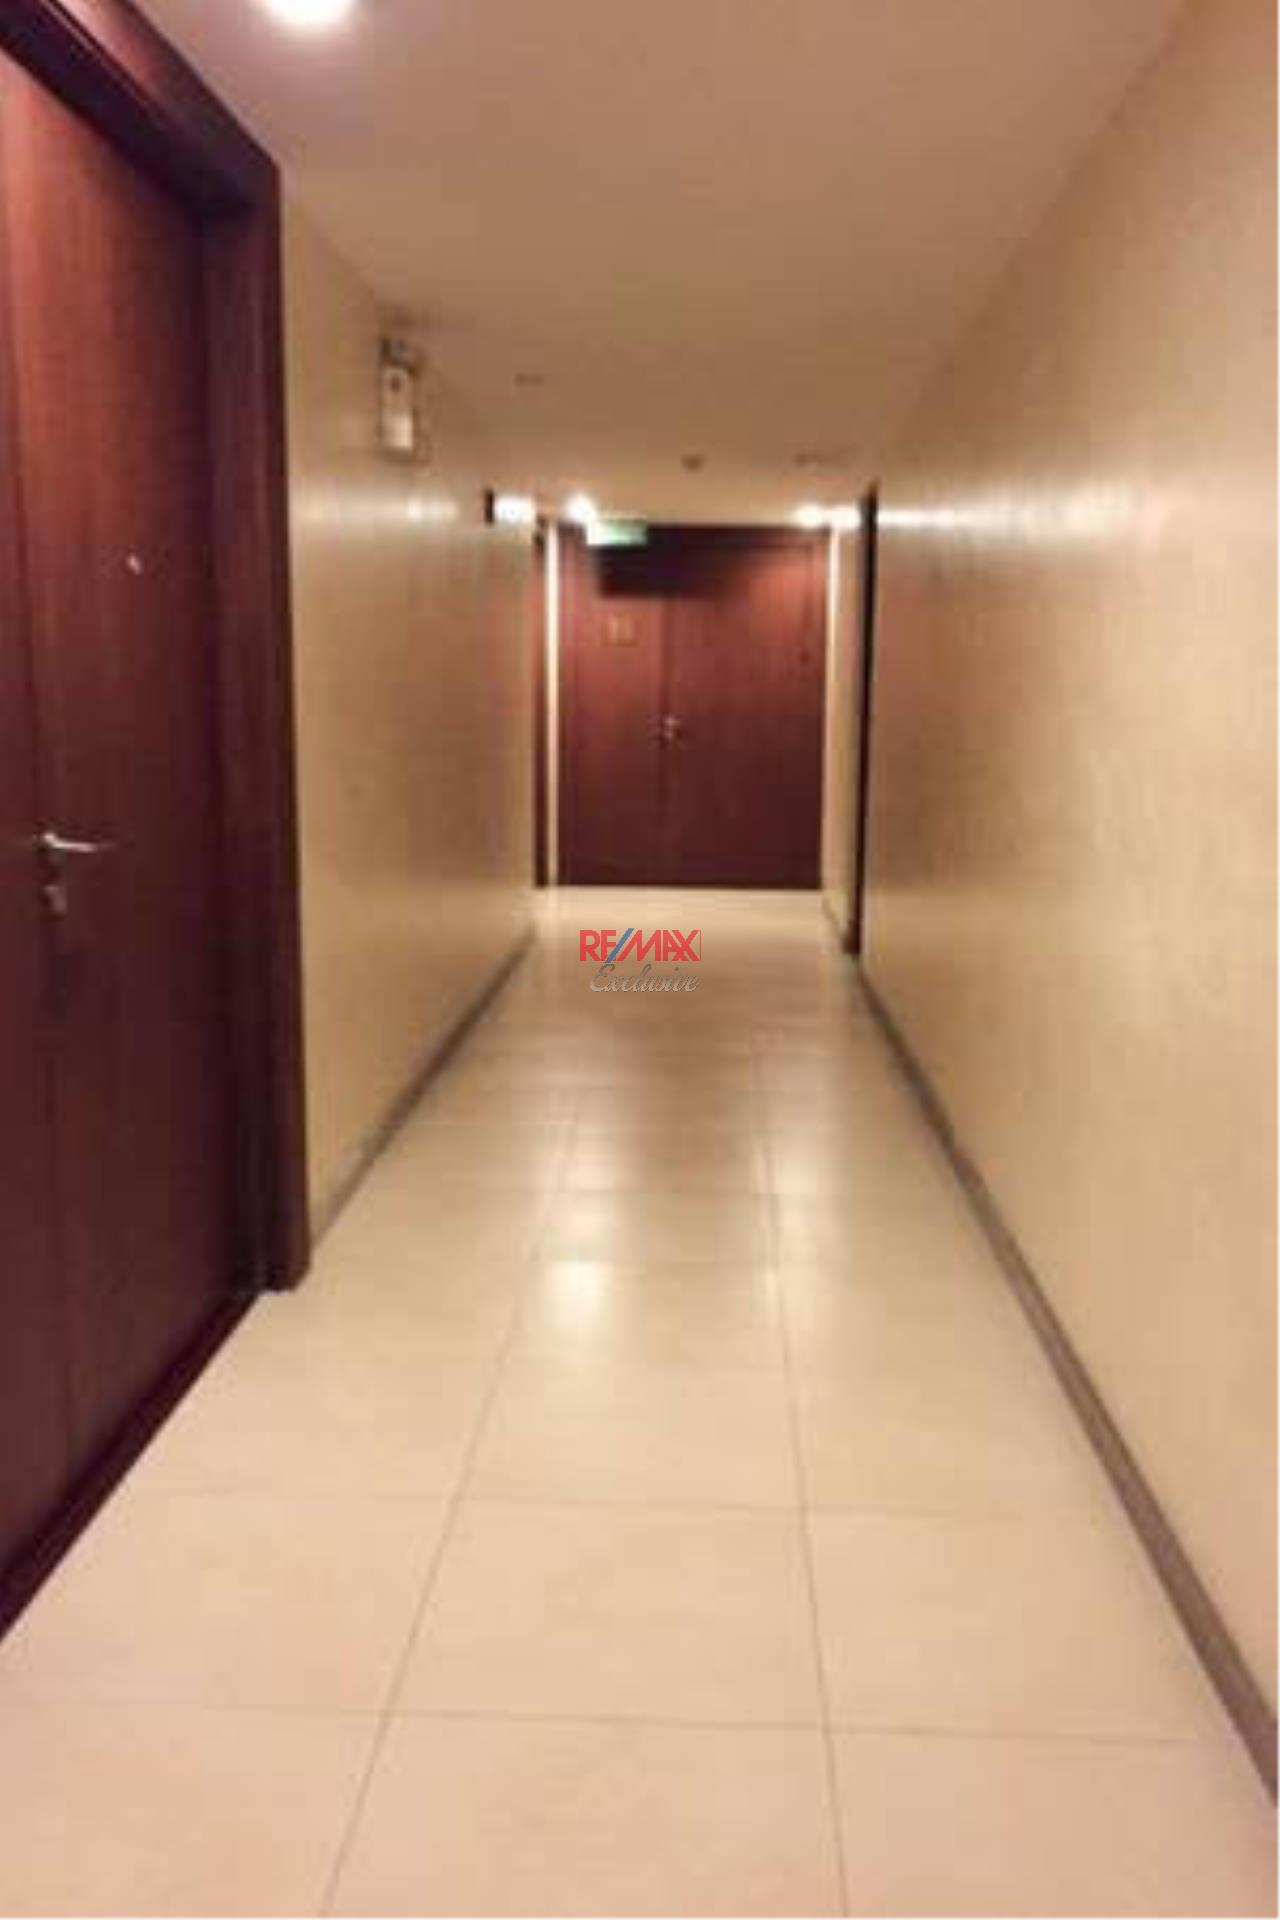 RE/MAX Exclusive Agency's Baan Saran 1 Bedroom Big Size for sale Good Price 4200000 THB 14